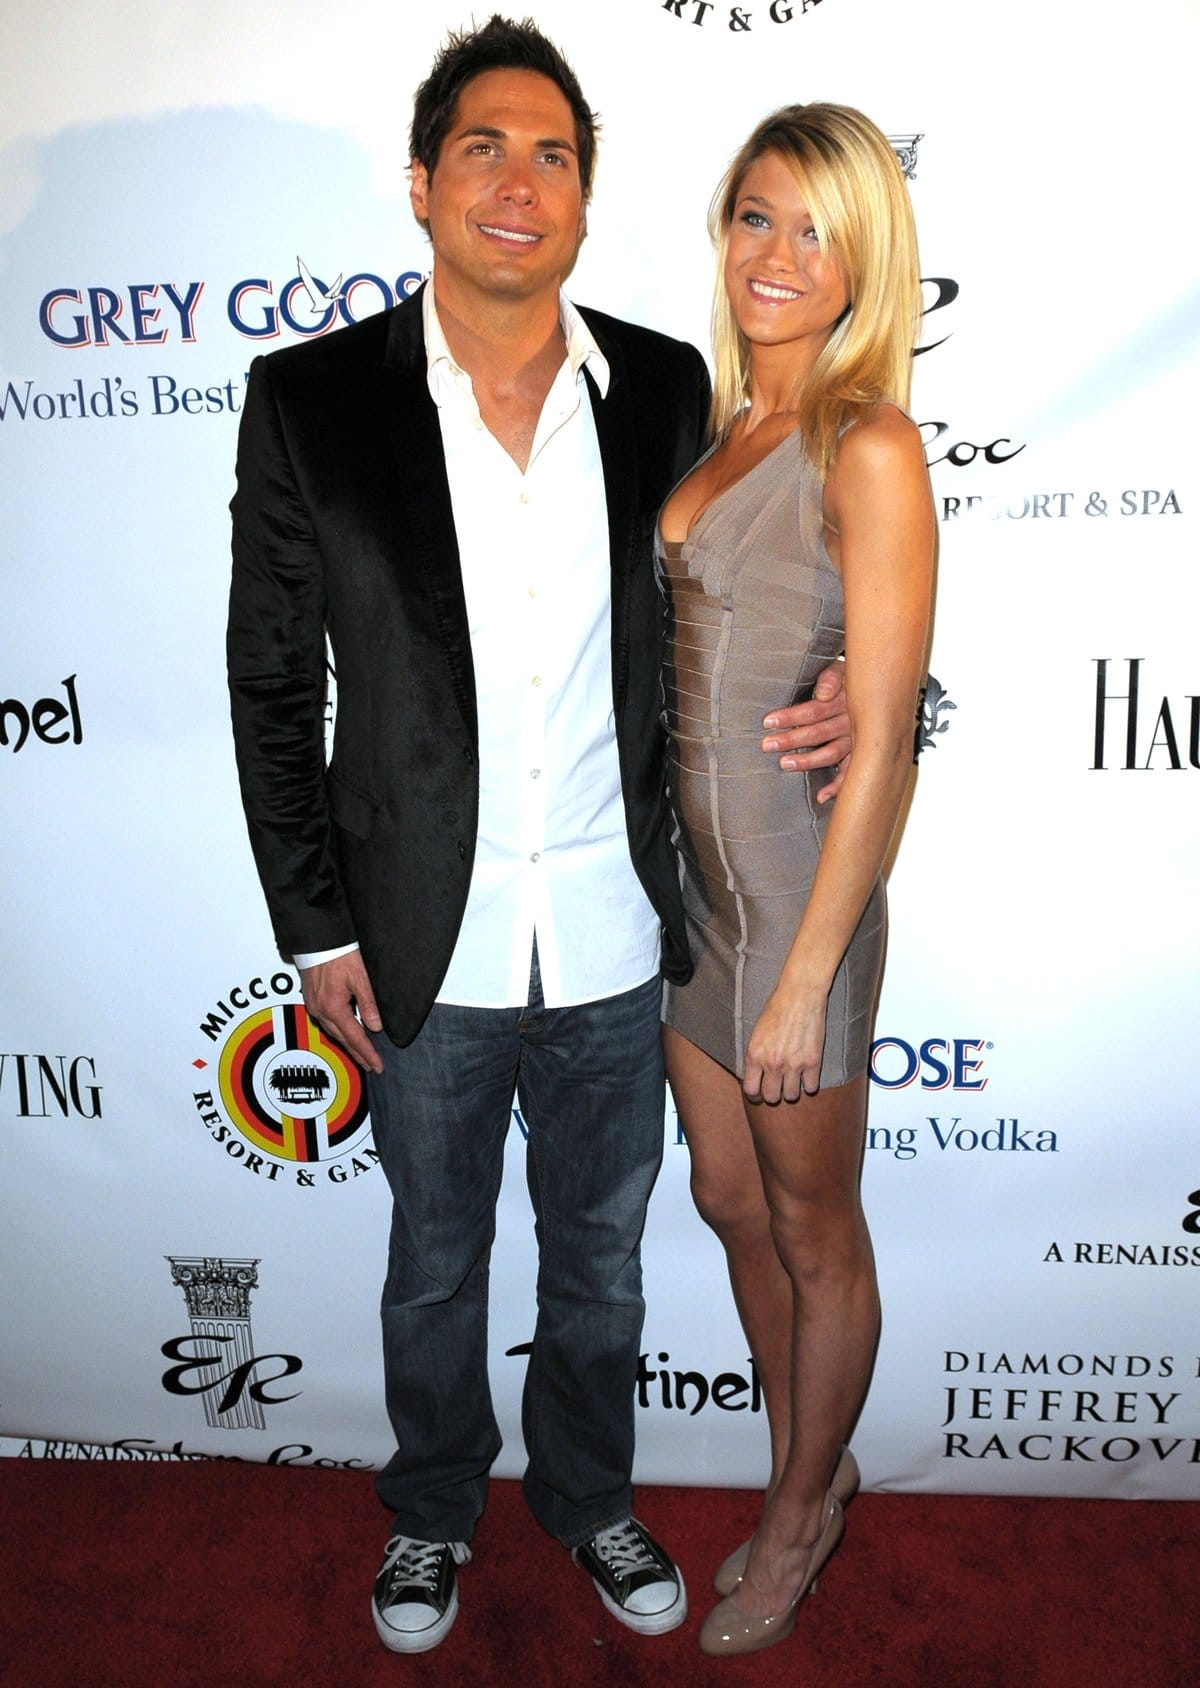 Abbey Wilson, who dated Joe Francis for 12 years until their relationship ended in 2020 amid the COVID-19 pandemic, claims he did drugs and was abusive